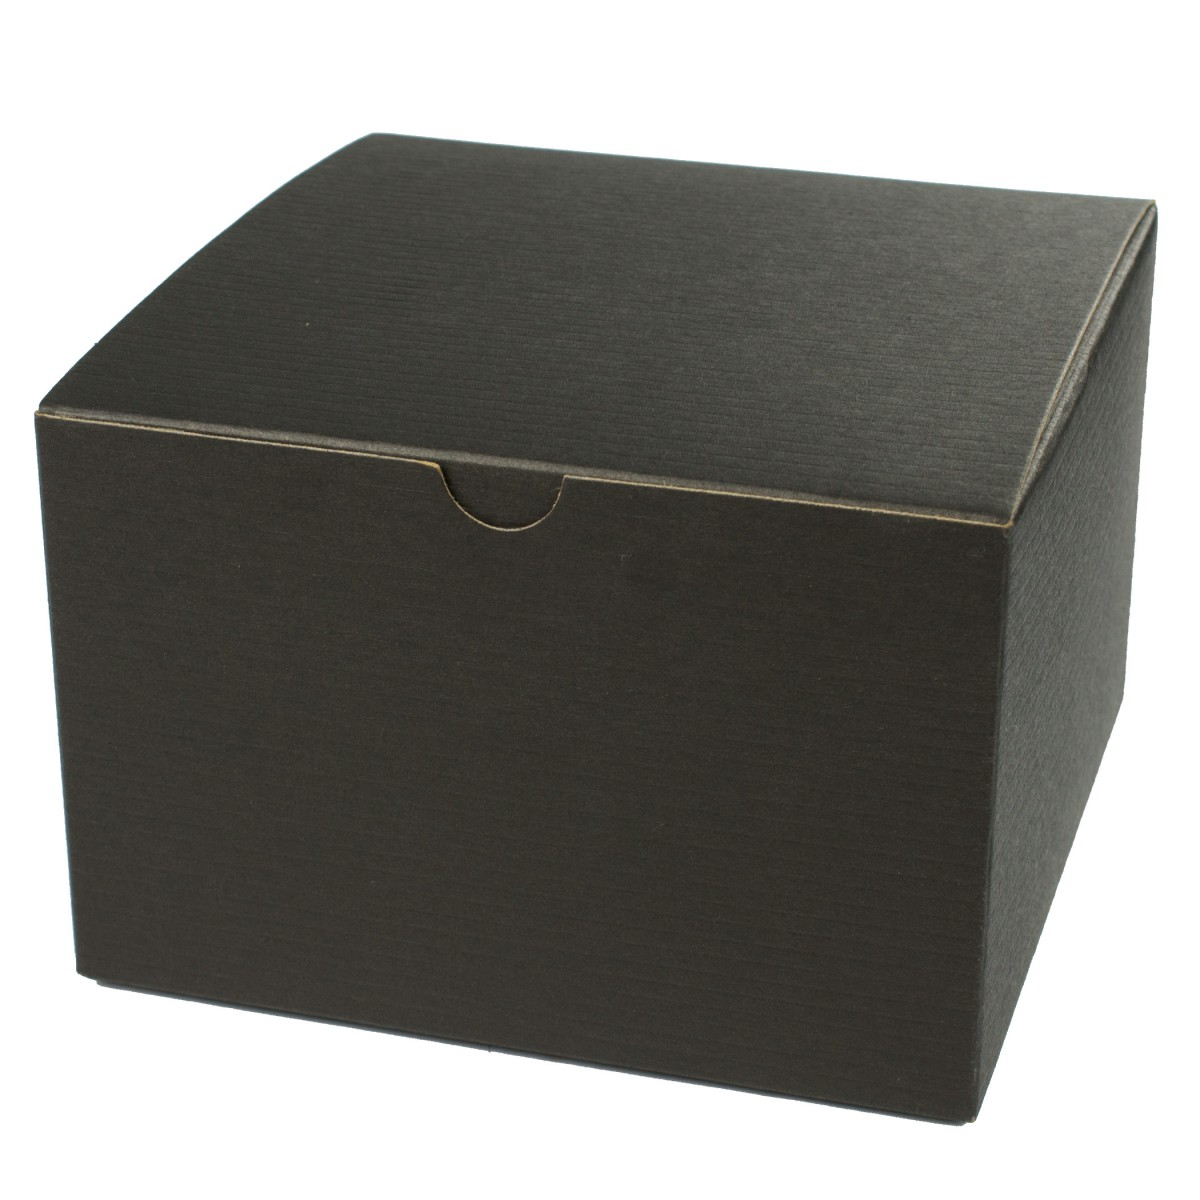 6 x 6 x 6 BLACK PINSTRIPE TUCK-TOP GIFT BOXES